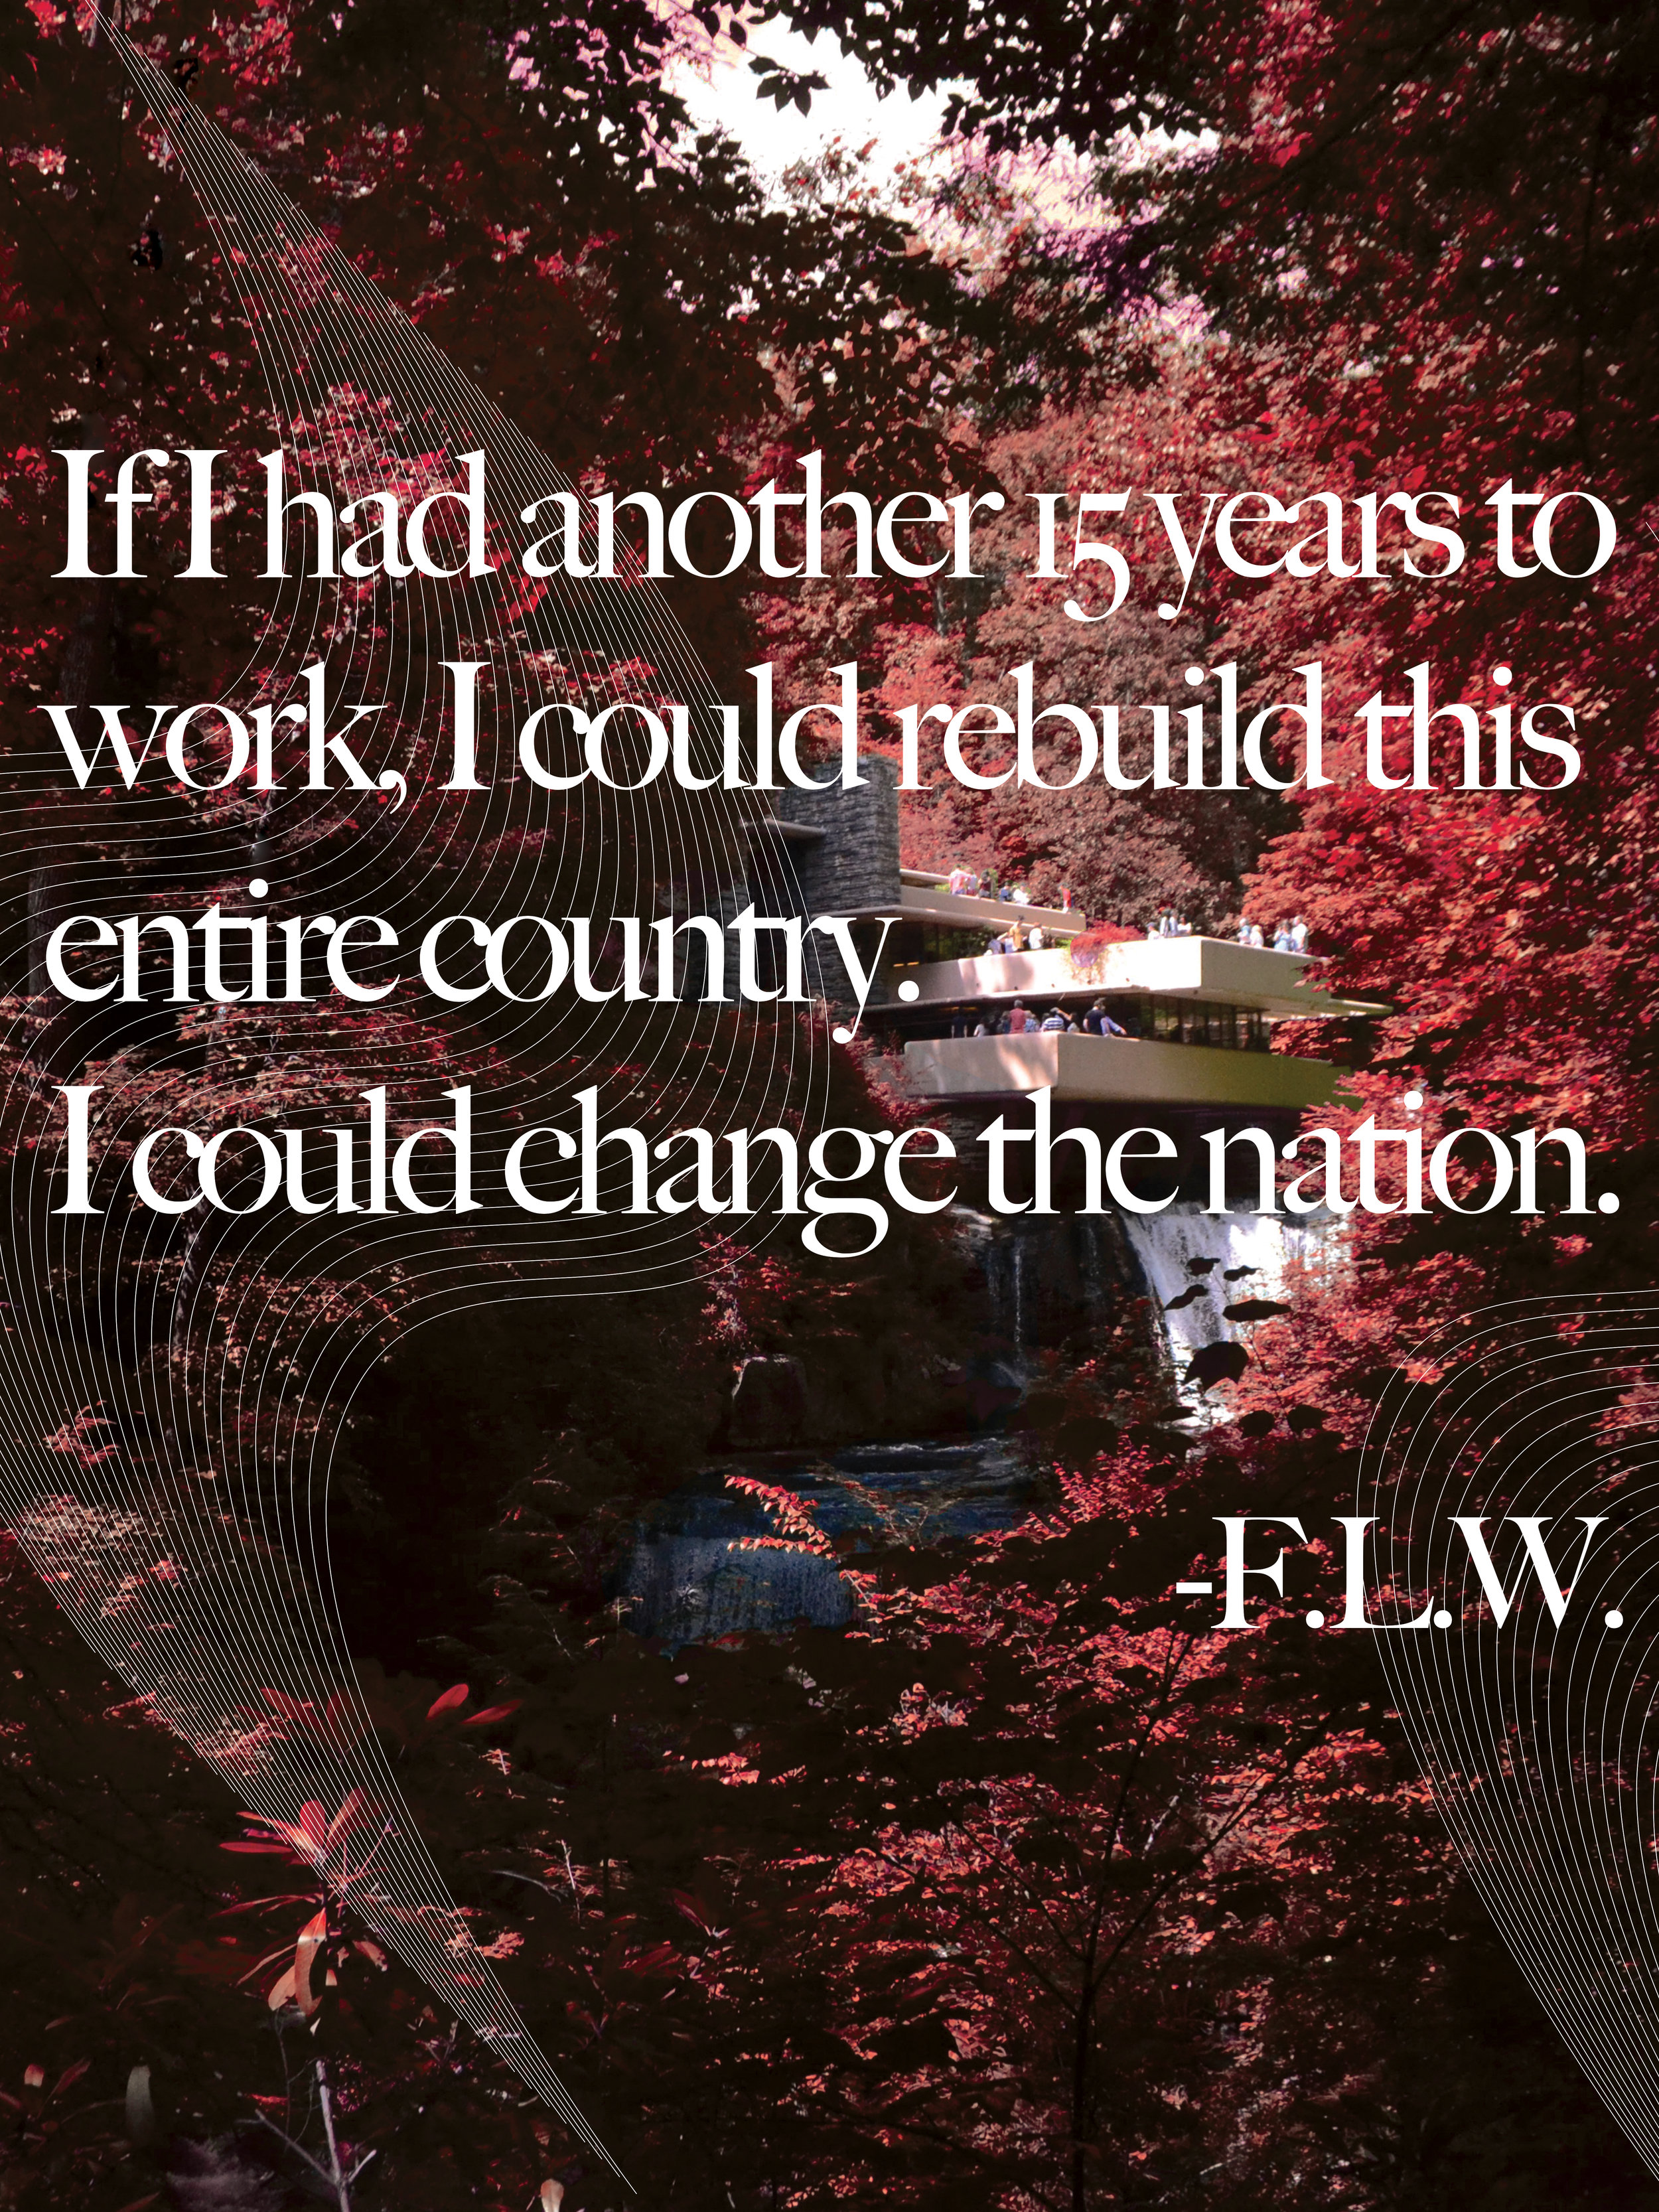 Image - Falling Waters by Frank Lloyd Wright. Quote - Frank Lloyd Wright.